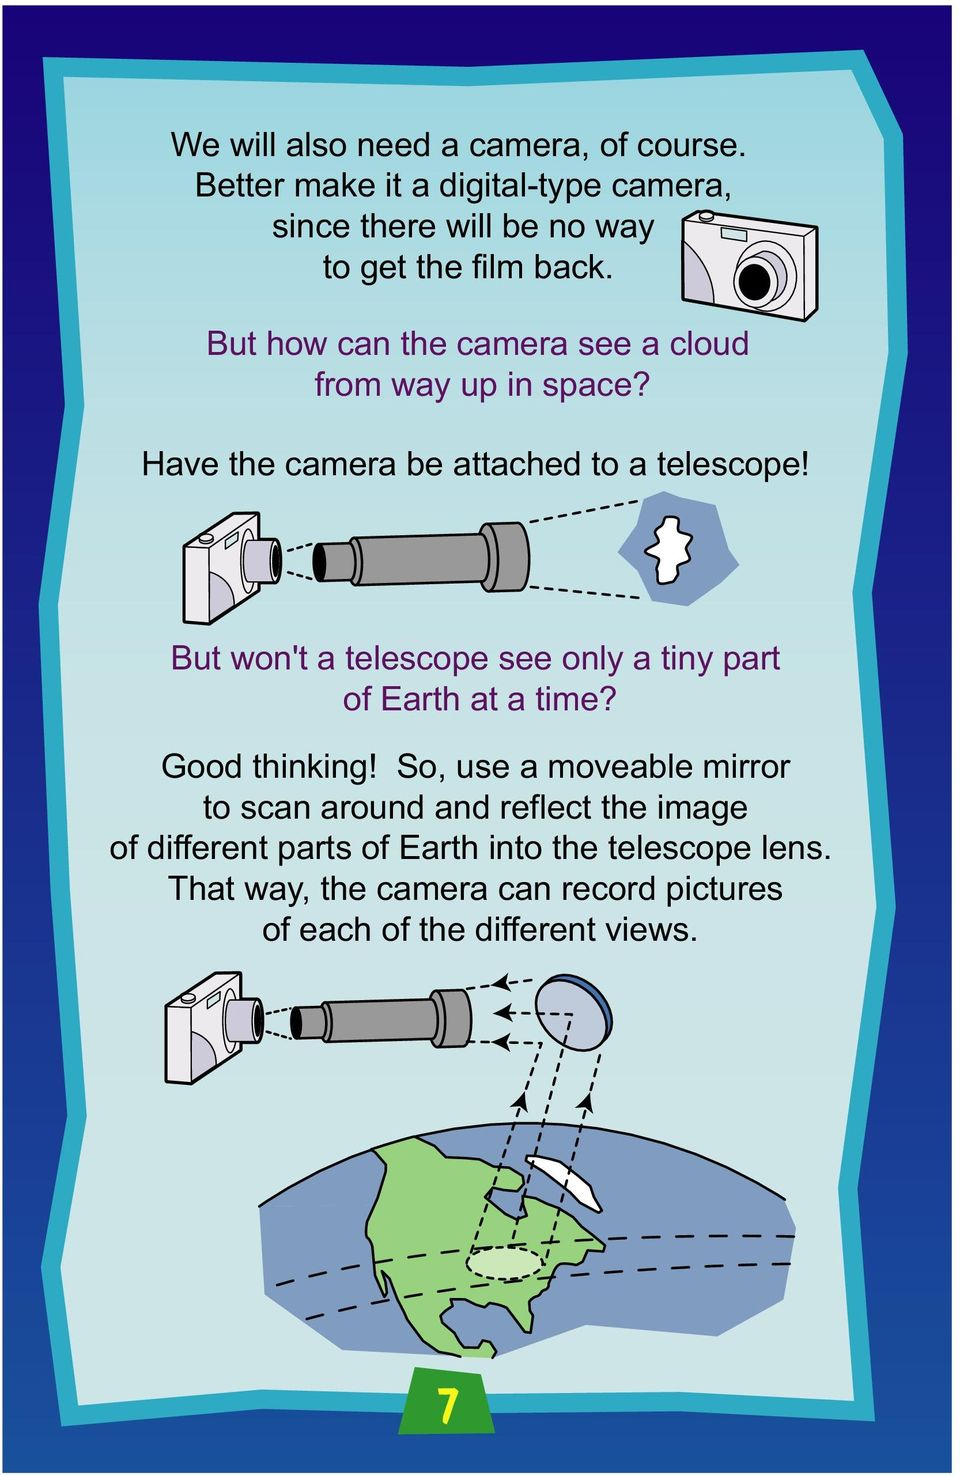 But won't a telescope see only a tiny part of Earth at a time? Good thinking!